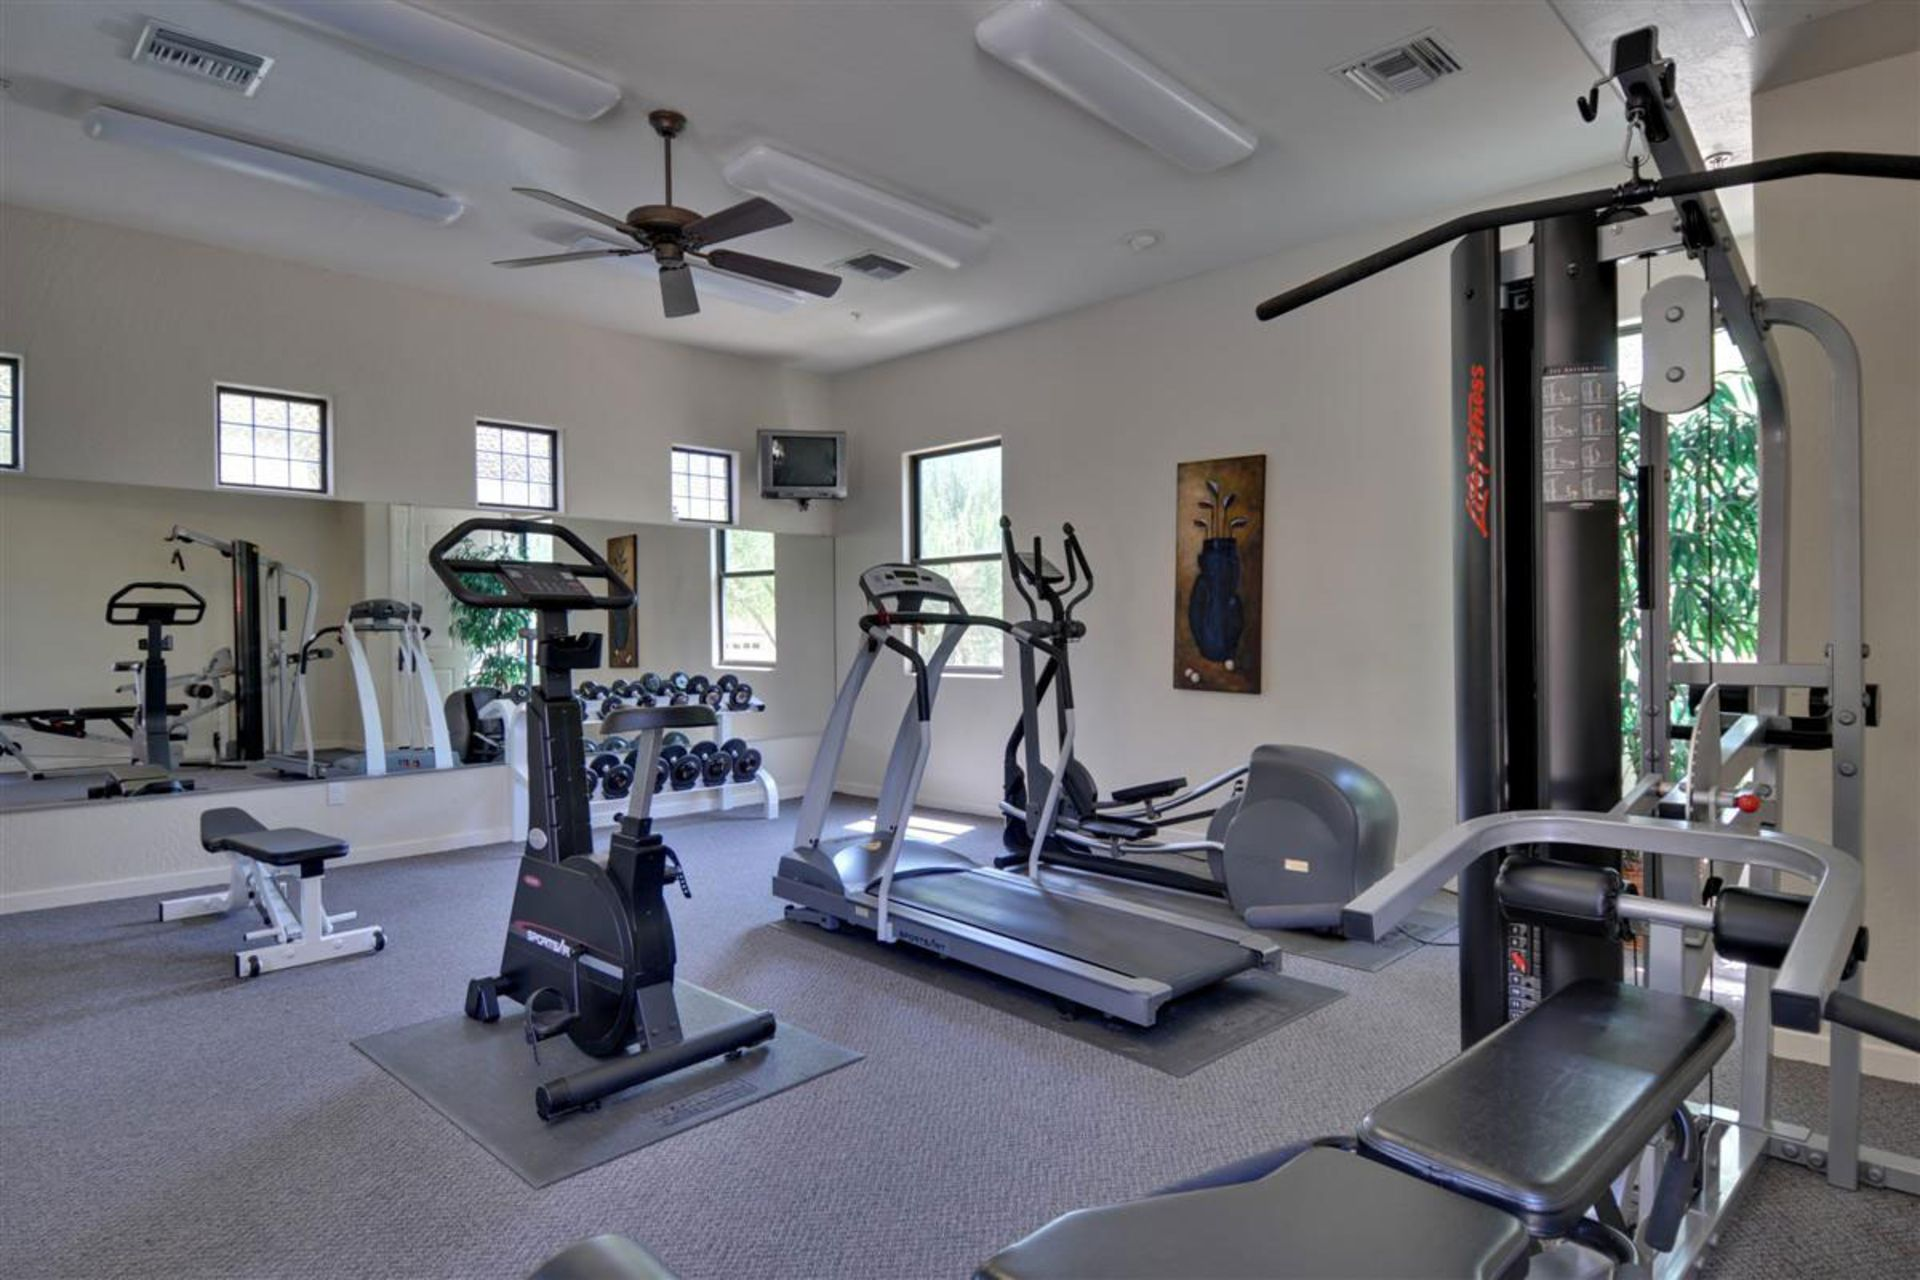 Ideas For Home Gym Winninginterioraffordableworkoutstationhomegymwithmodern